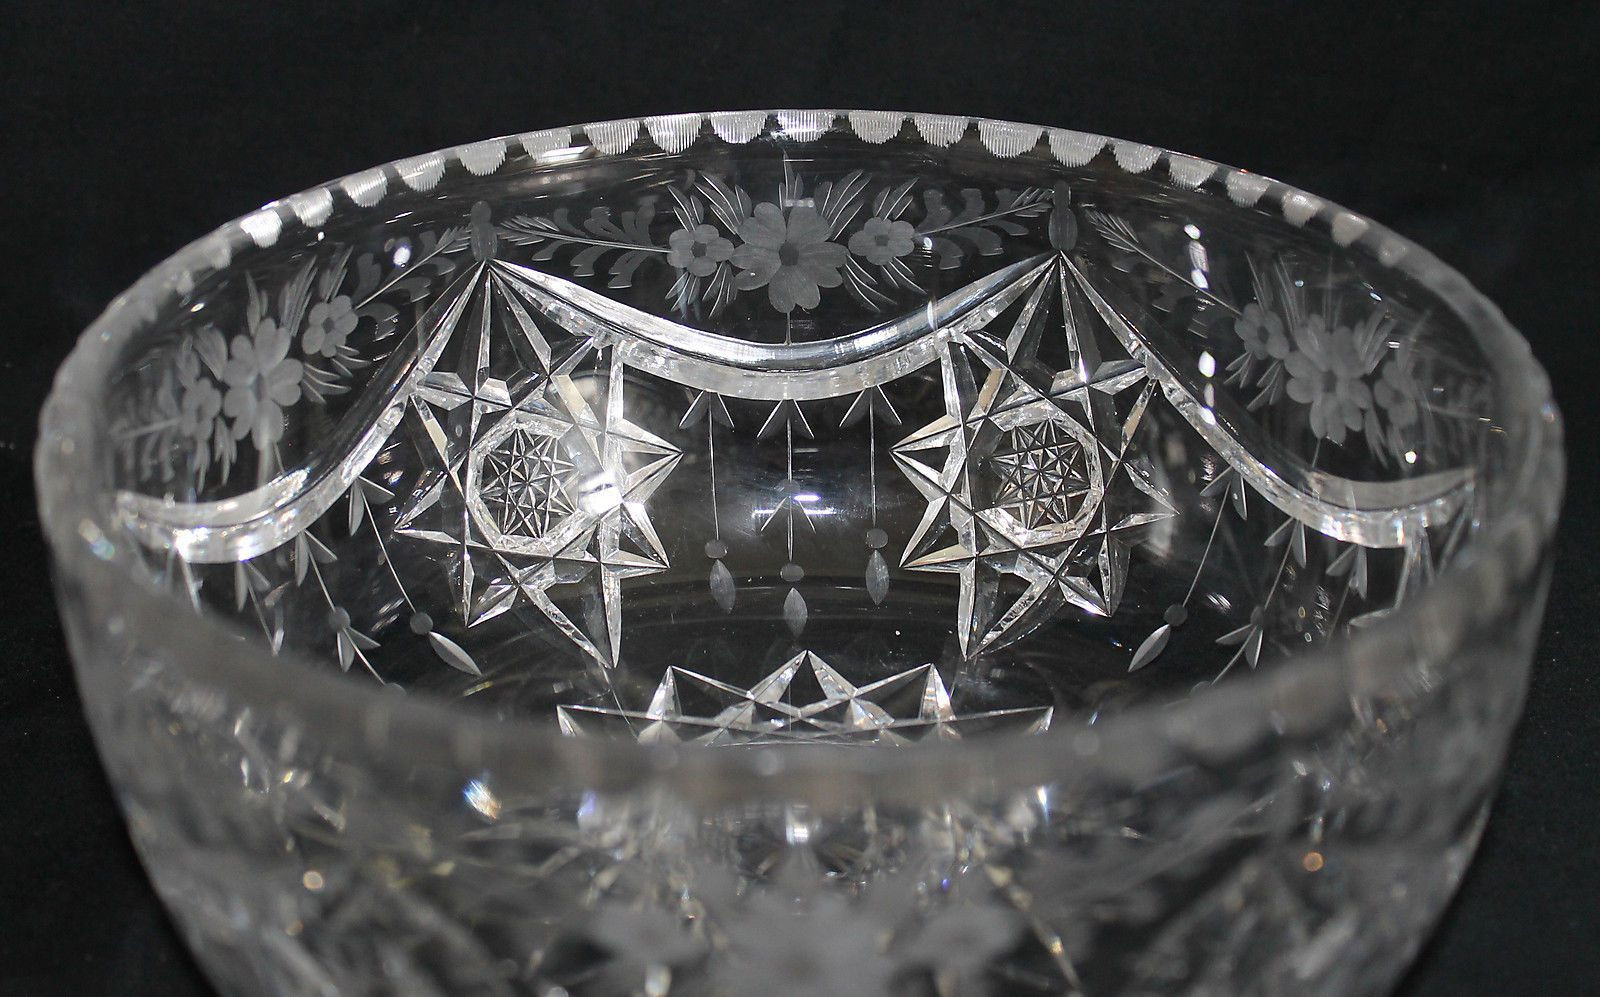 white glass bowl vase of hawkes co abcg cut glass crystal bowl pinterest cut glass in hawkes co abcg cut glass crystal bowl ebay